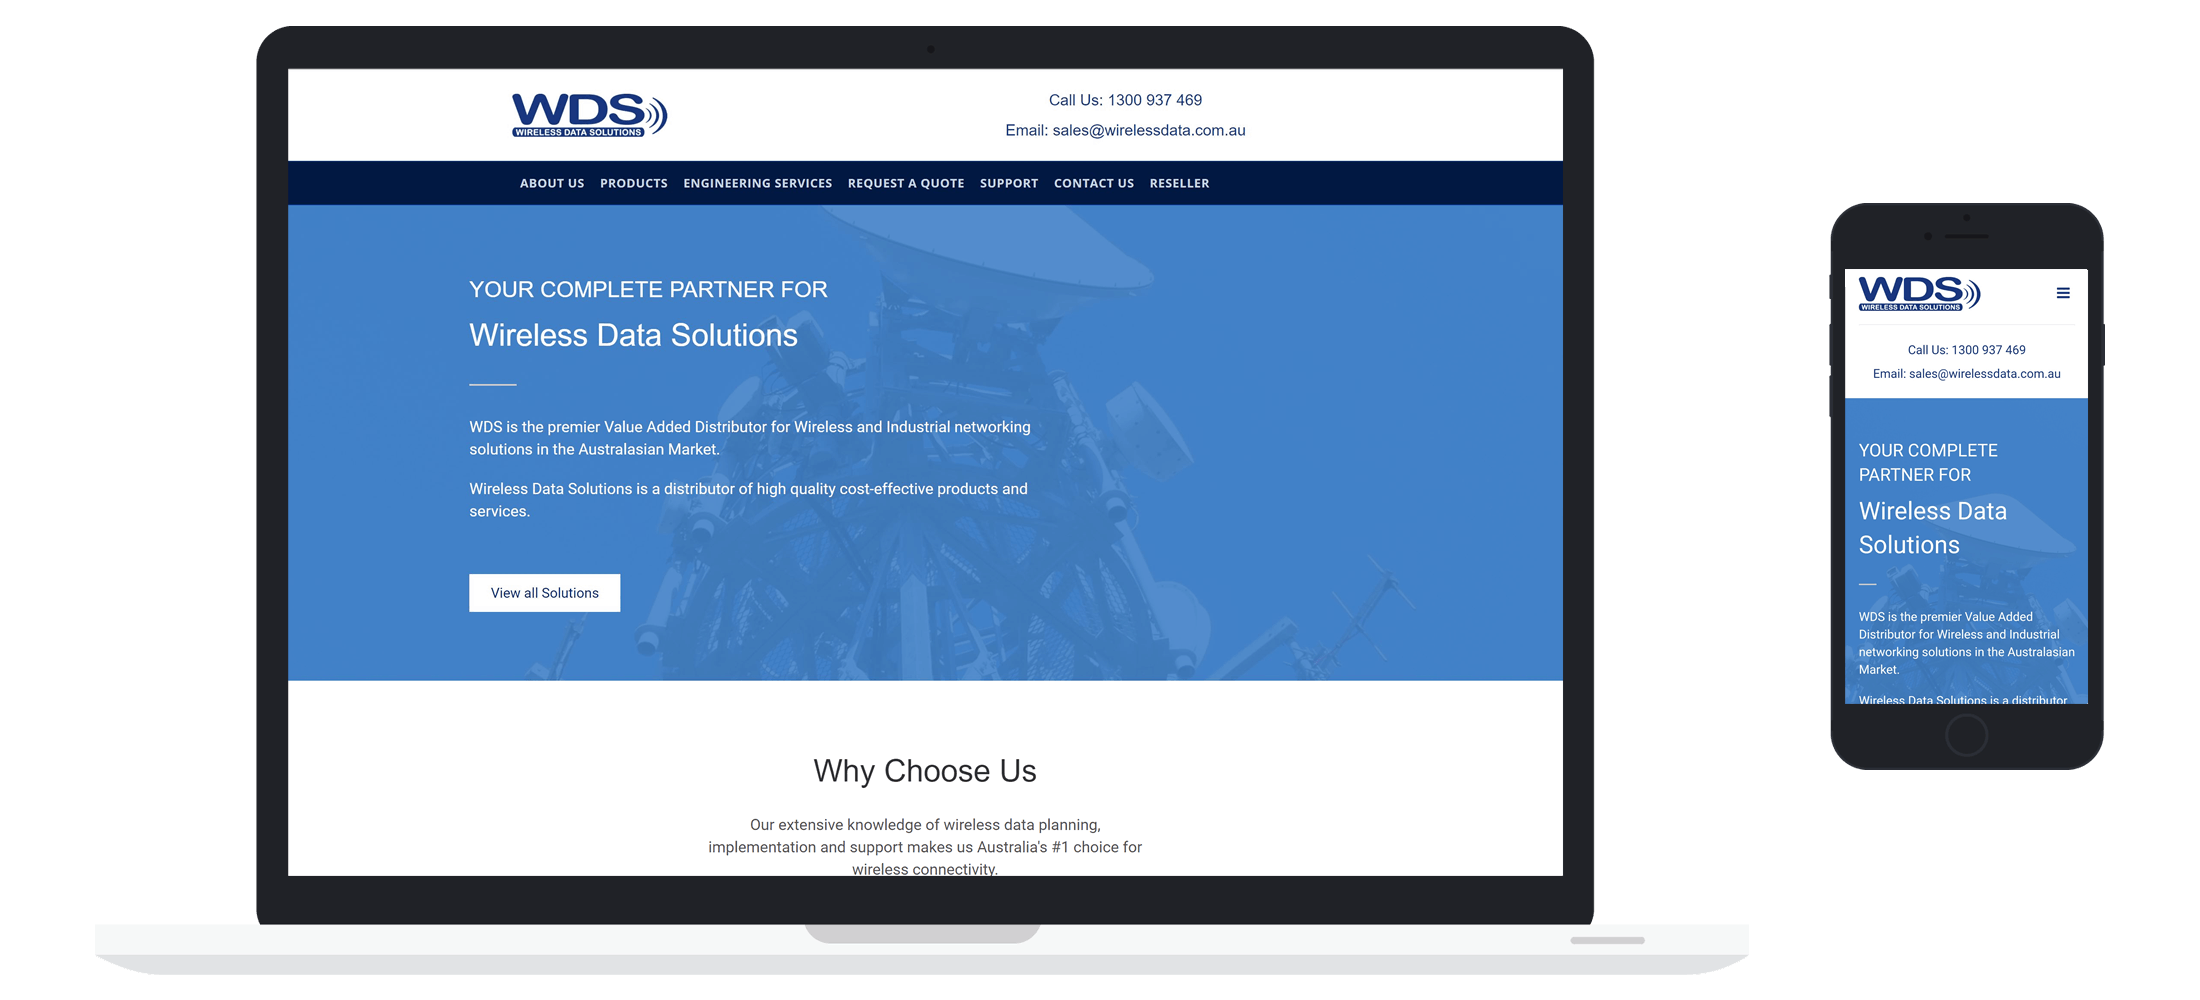 Managed IT Website client - WDS Case Study